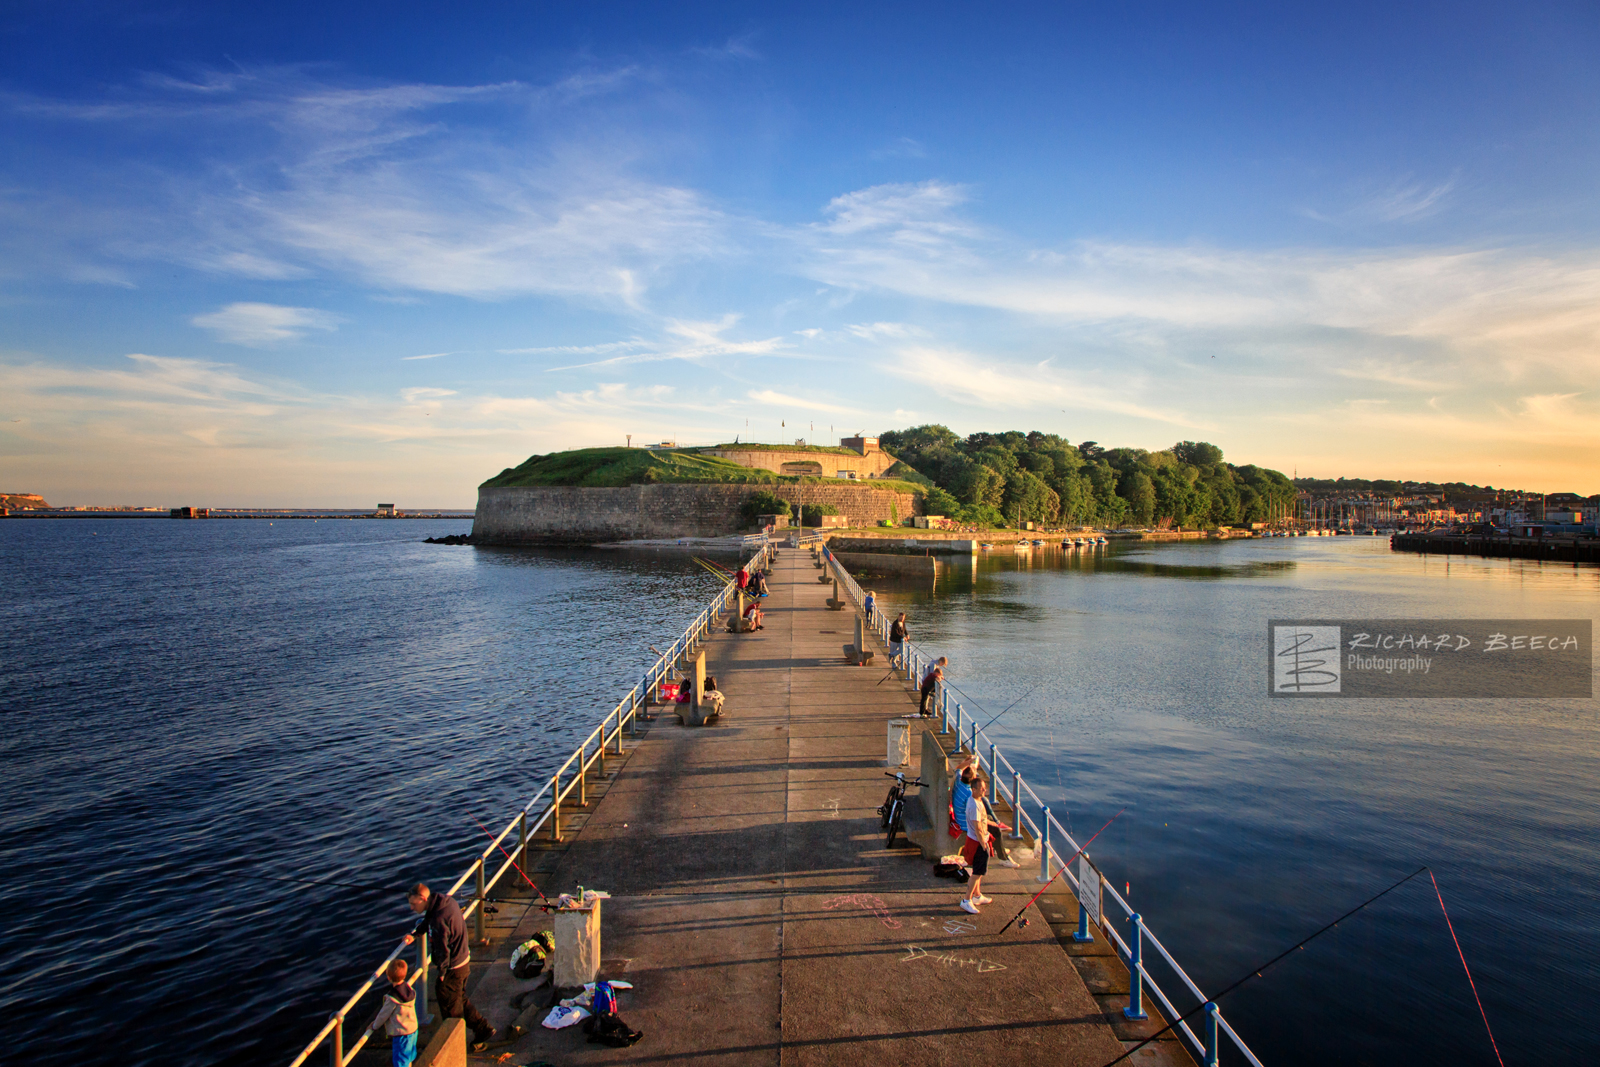 Nothe Fort and Gardens from the Stone Pier